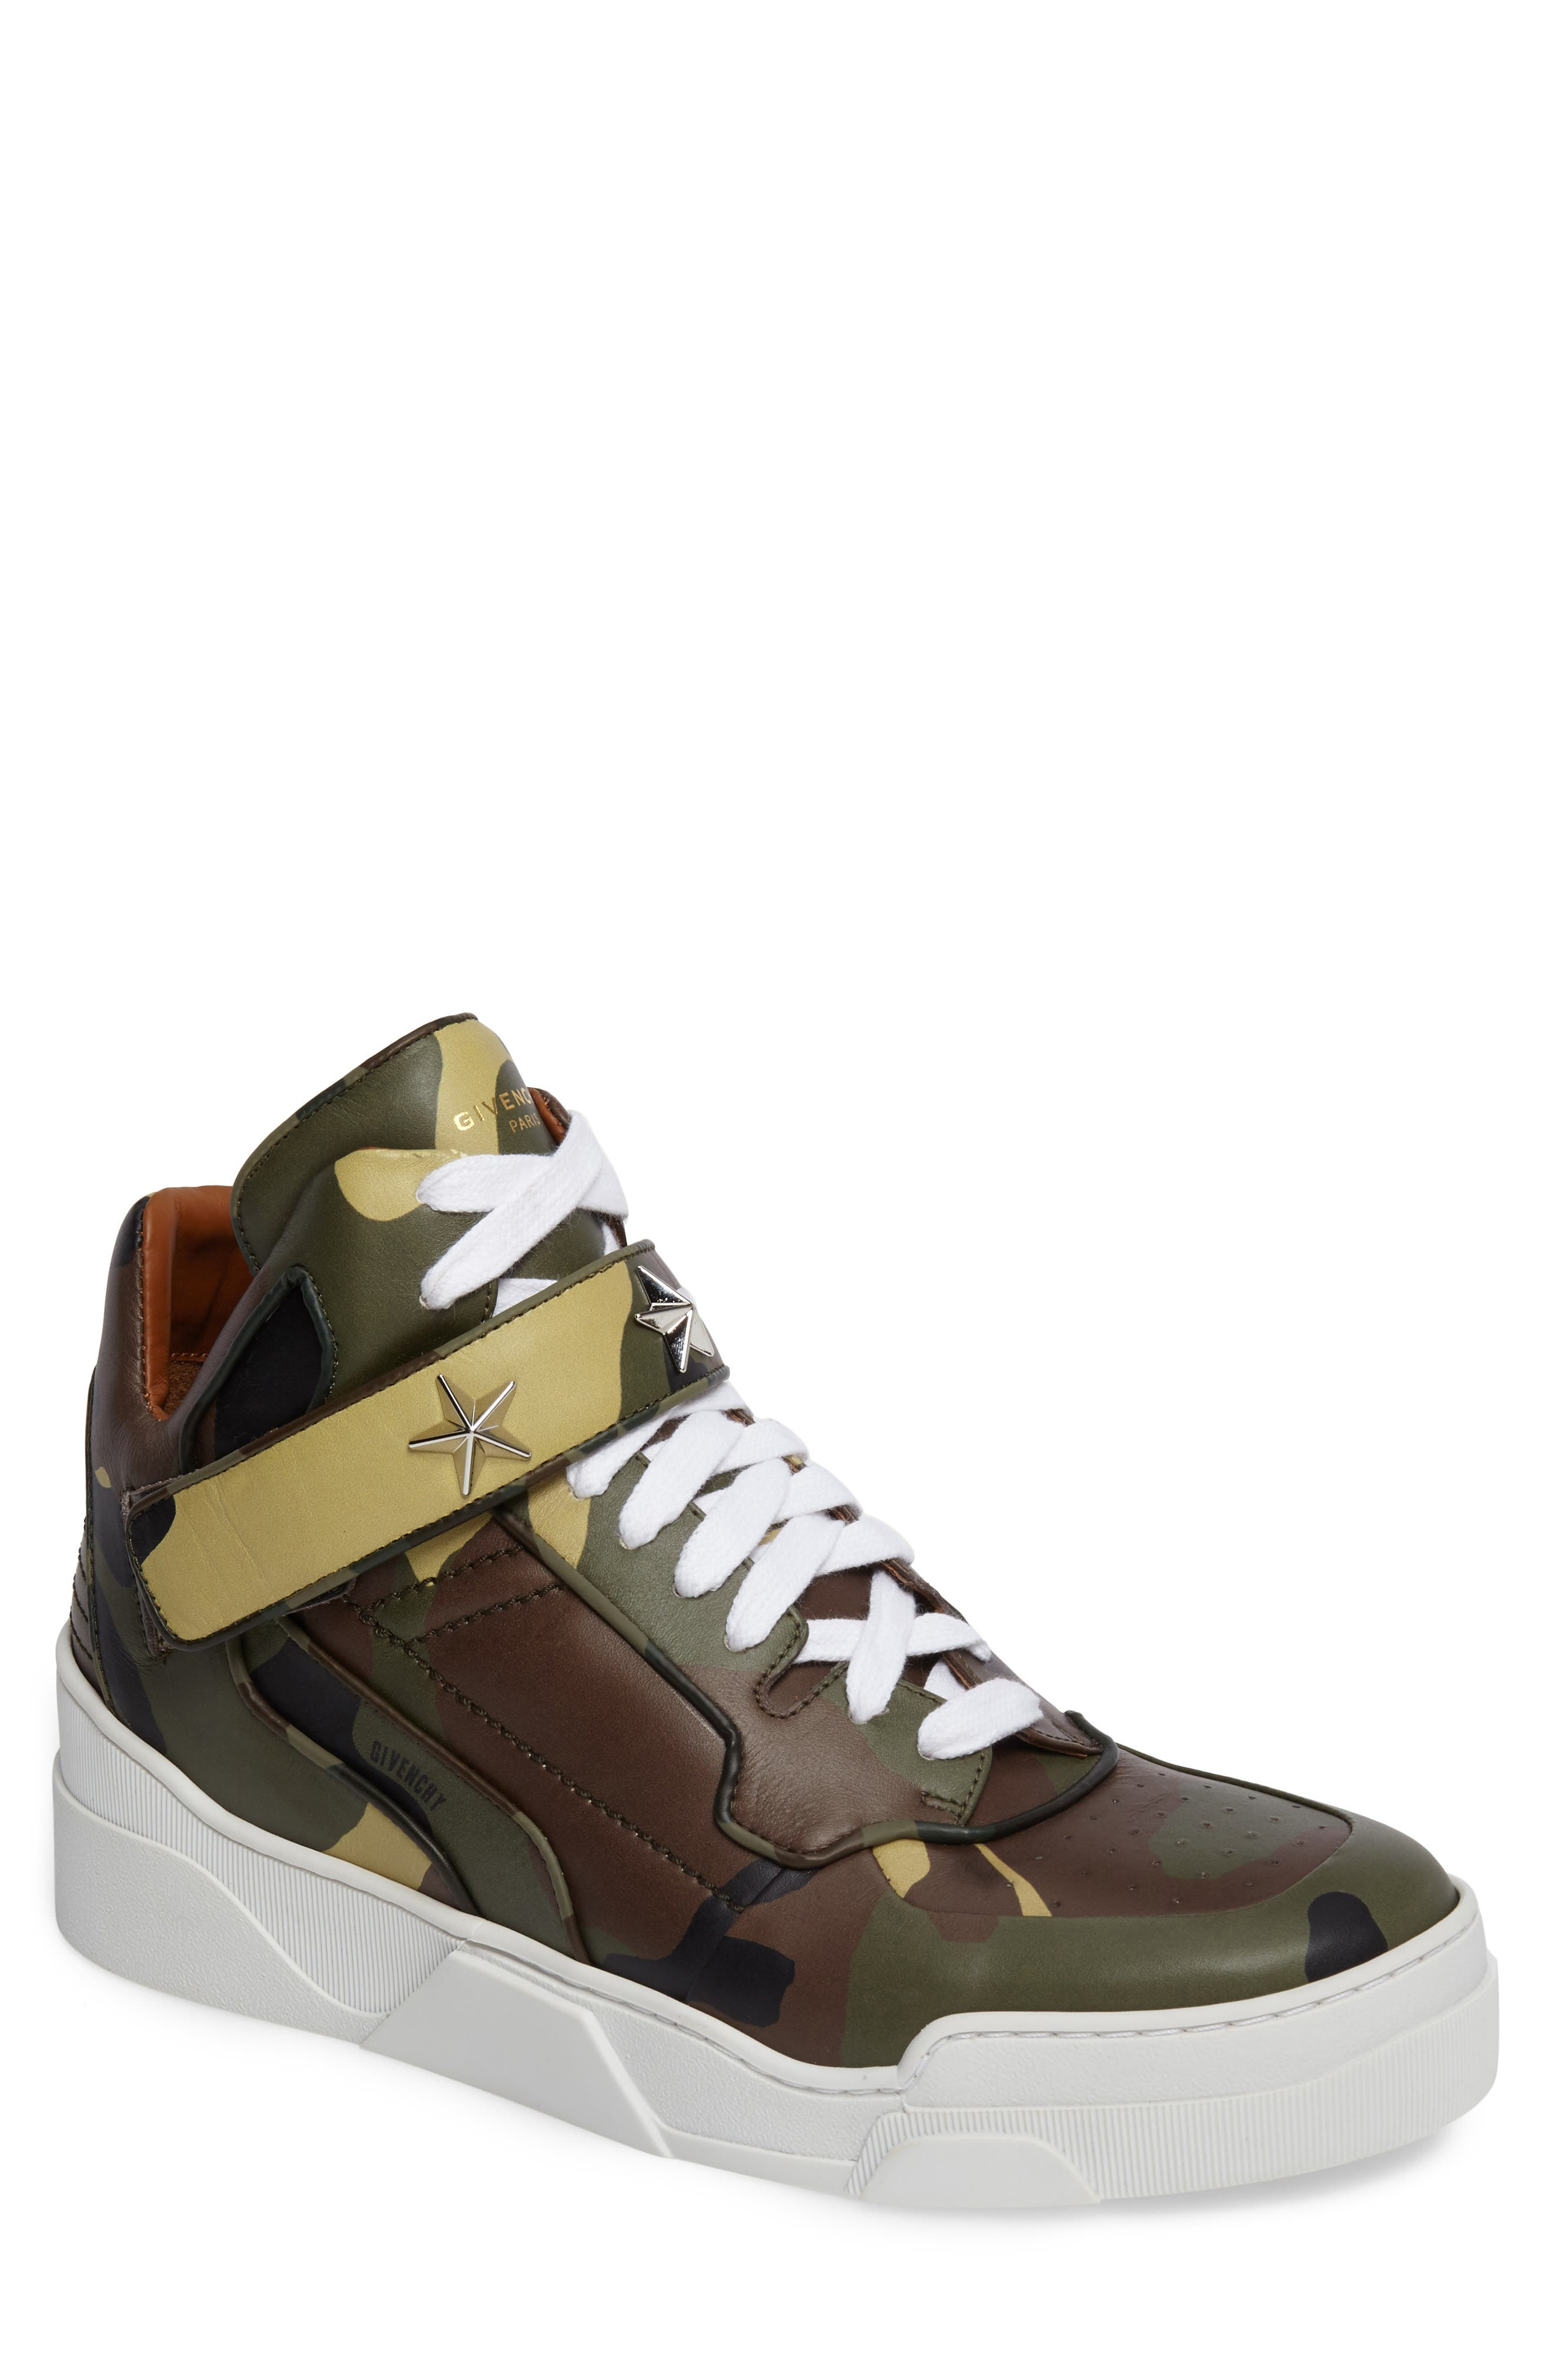 Main Image - Givenchy 'Tyson' High Top Sneaker (Men) (Nordstrom Exclusive)